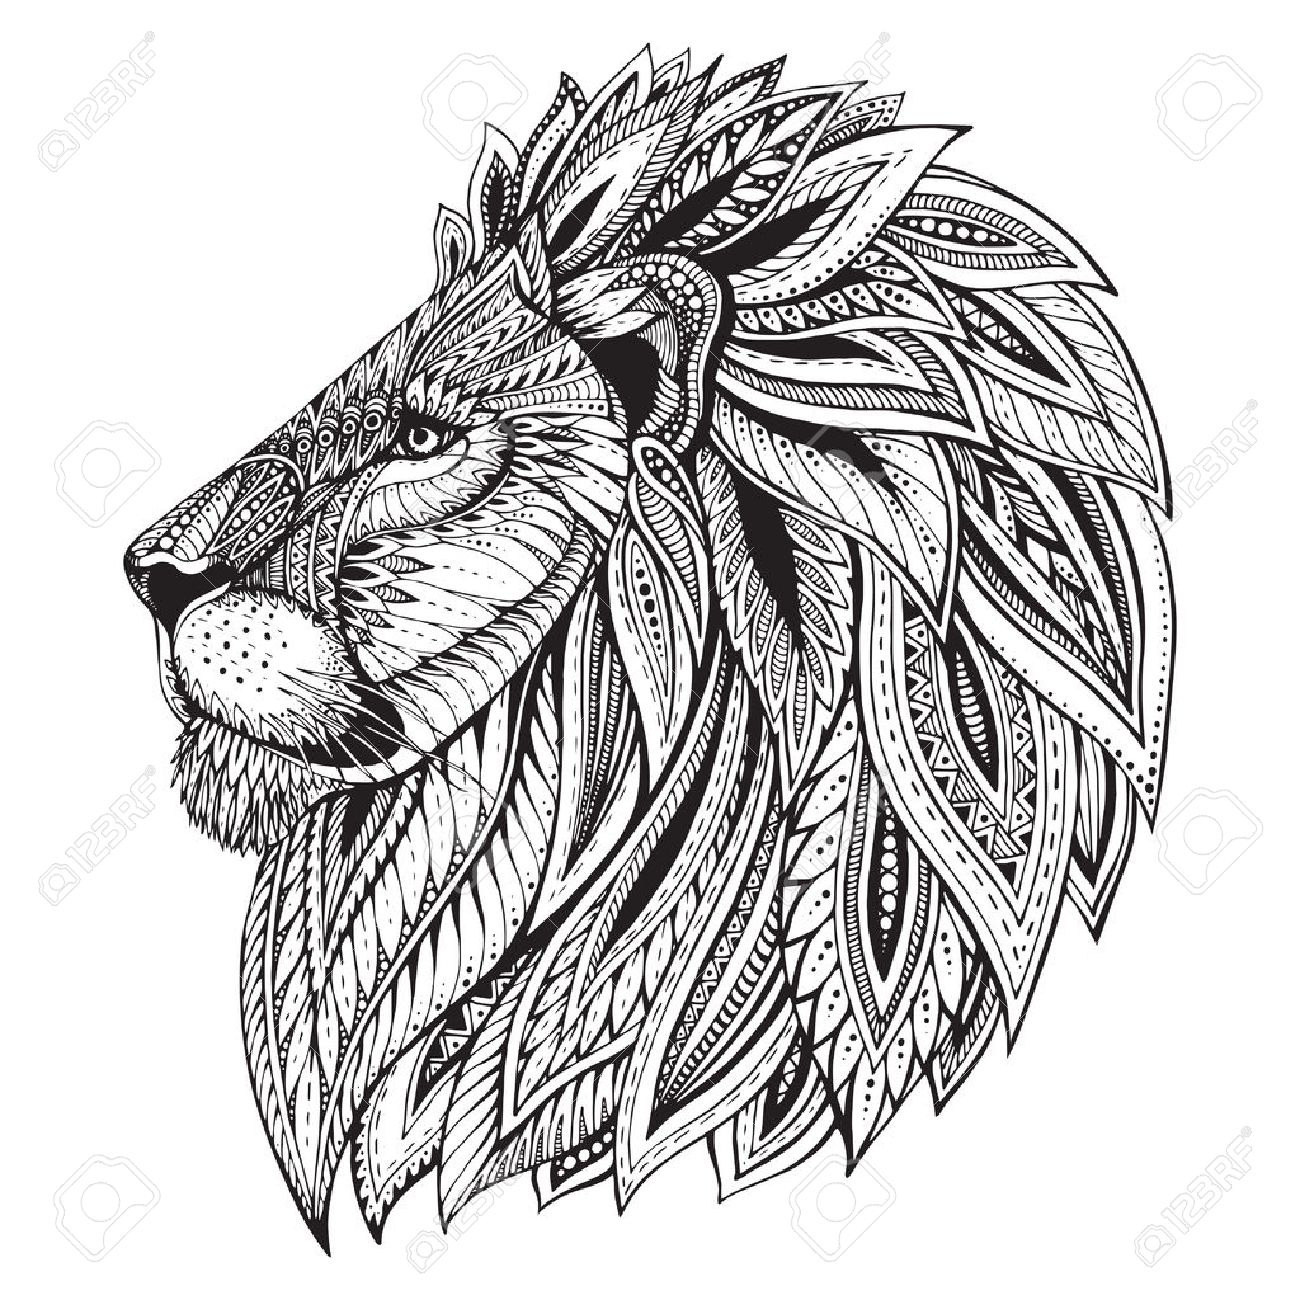 1300x1300 Ethnic Patterned Ornate Head Of Lion. Black And White Doodle